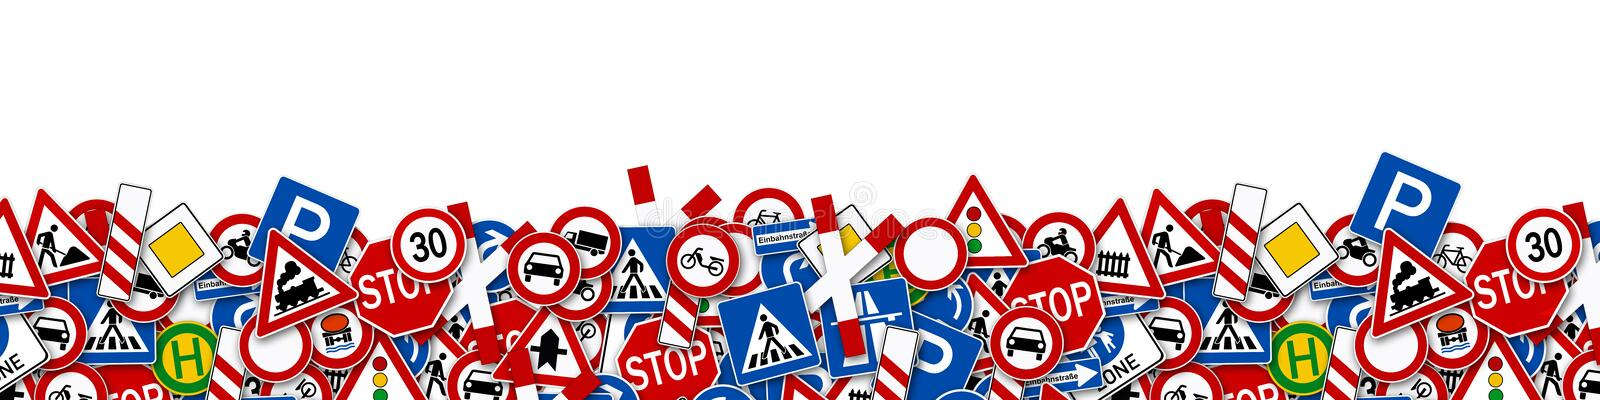 Collage of many road sign illustration. Isolated on white background stock illustration